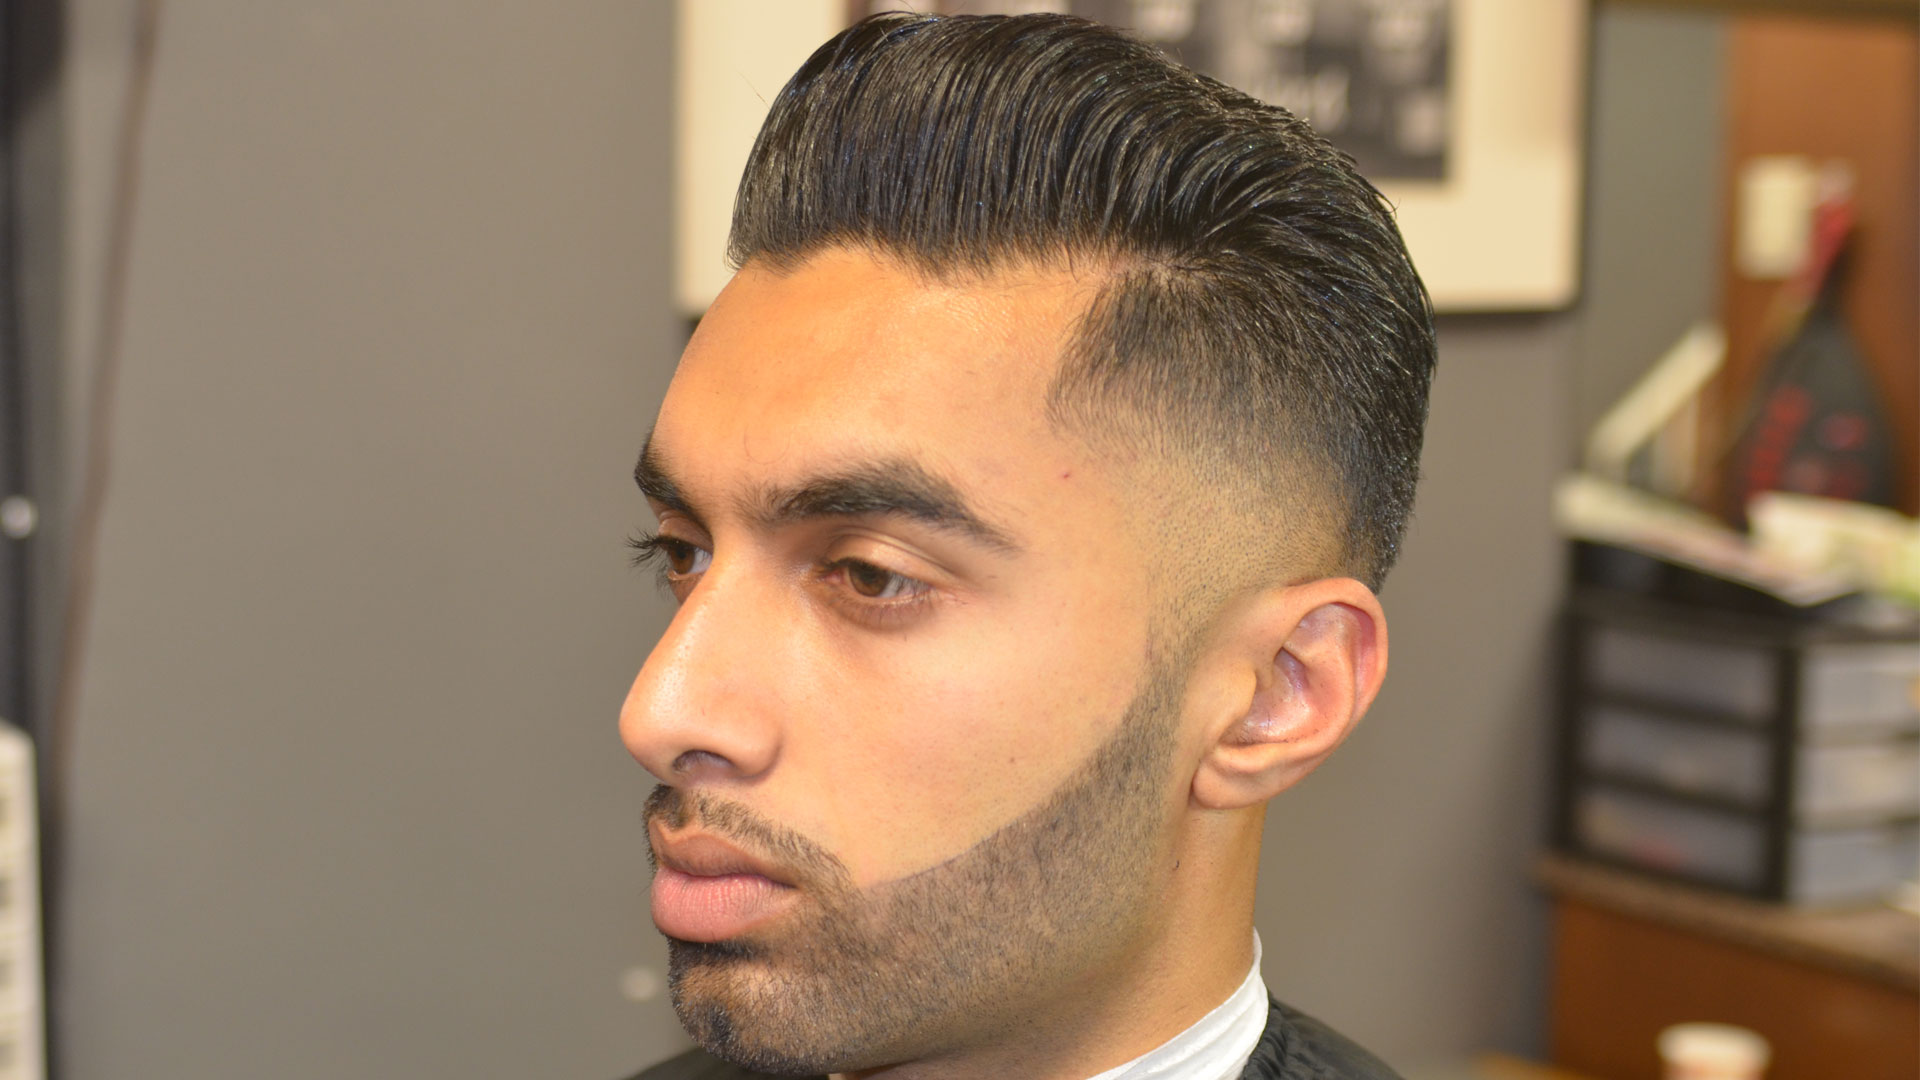 Pleasing Faux Hawk Mohawk Texturized Faded And Tapered With Beard Short Hairstyles Gunalazisus